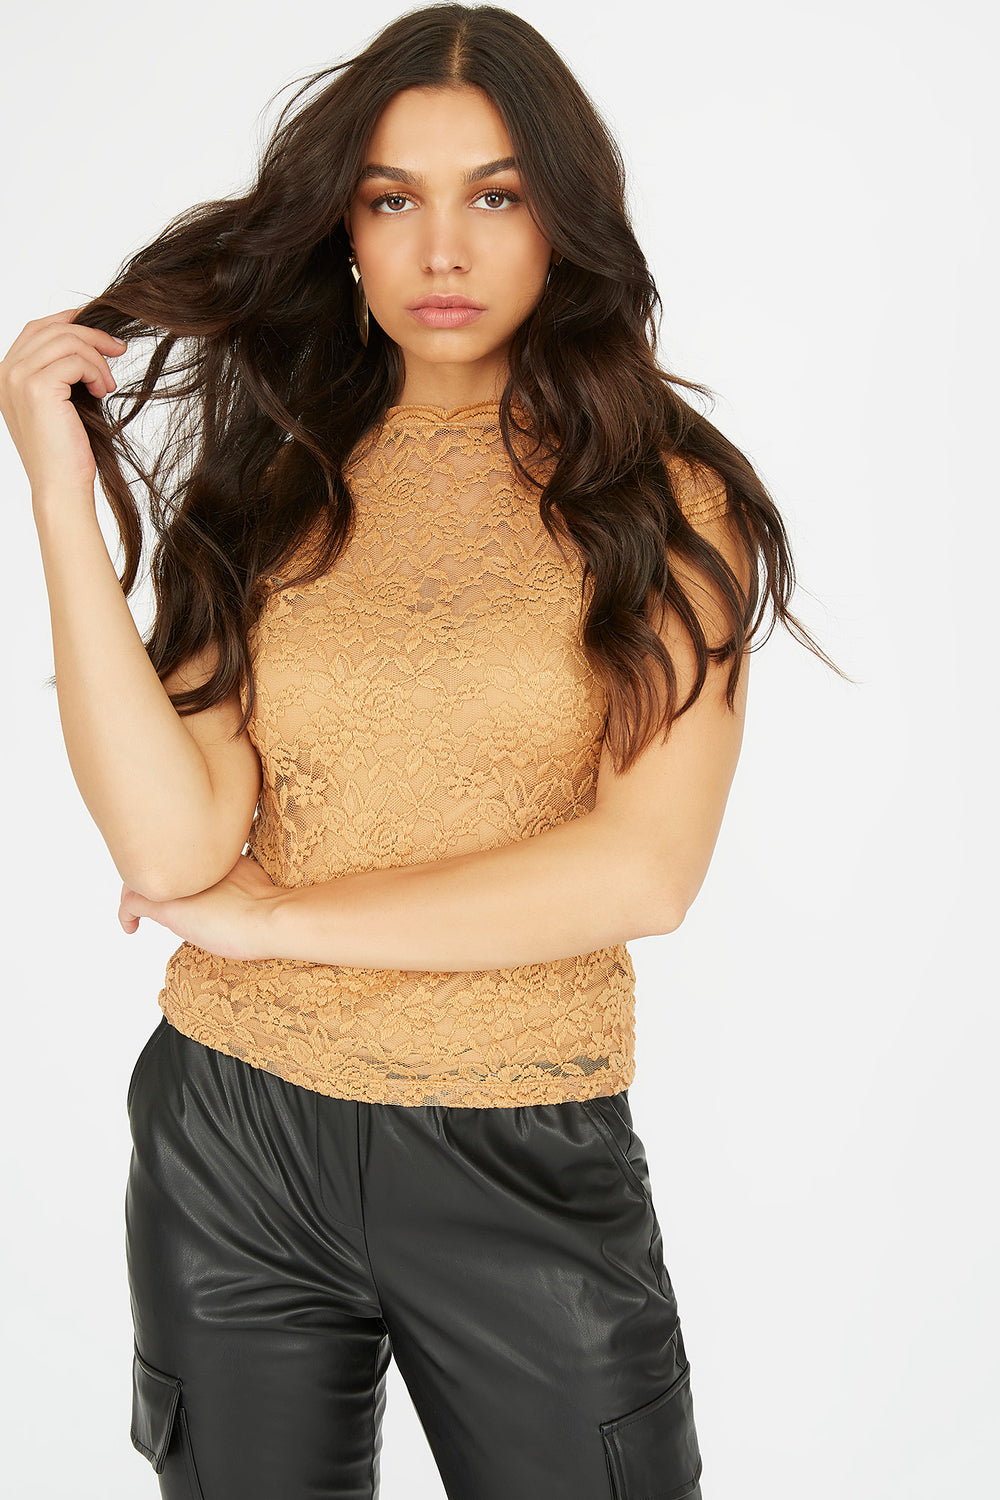 Lace Scallop Mock Neck Short Sleeve Top Light Brown